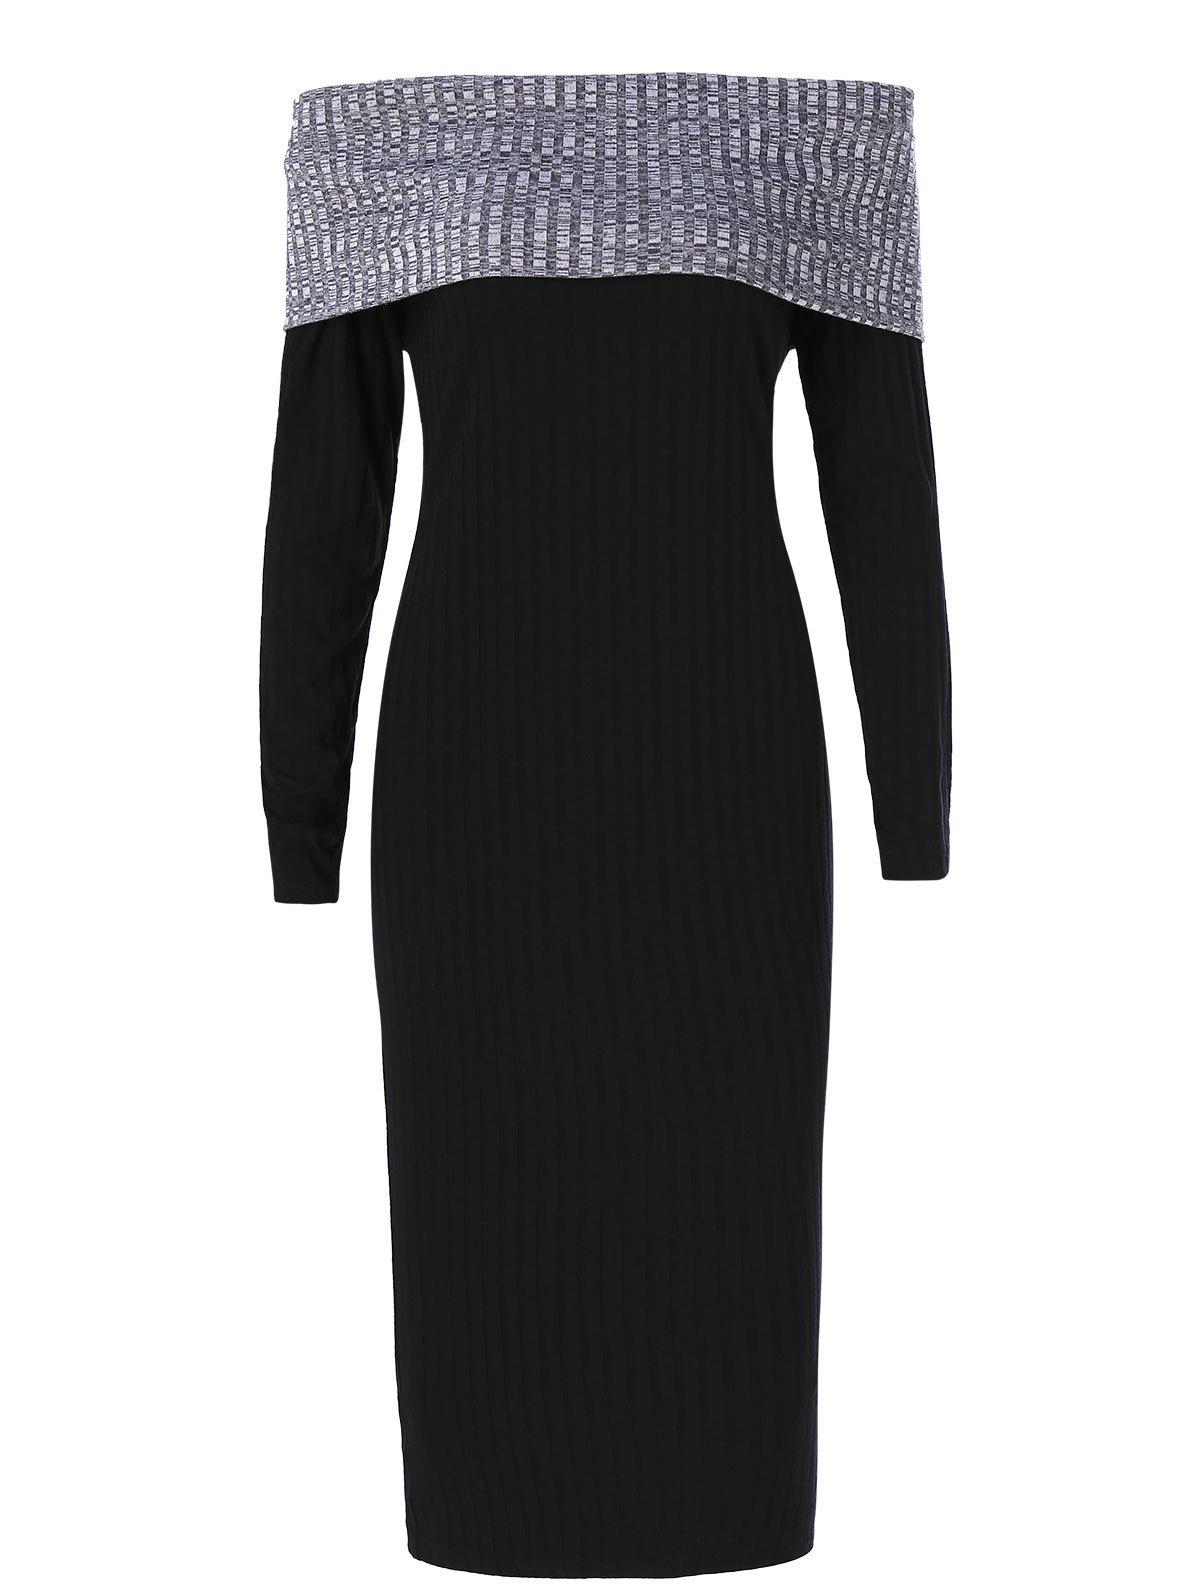 Hot Contrast Knitted Off Shoulder Bodycon Dress